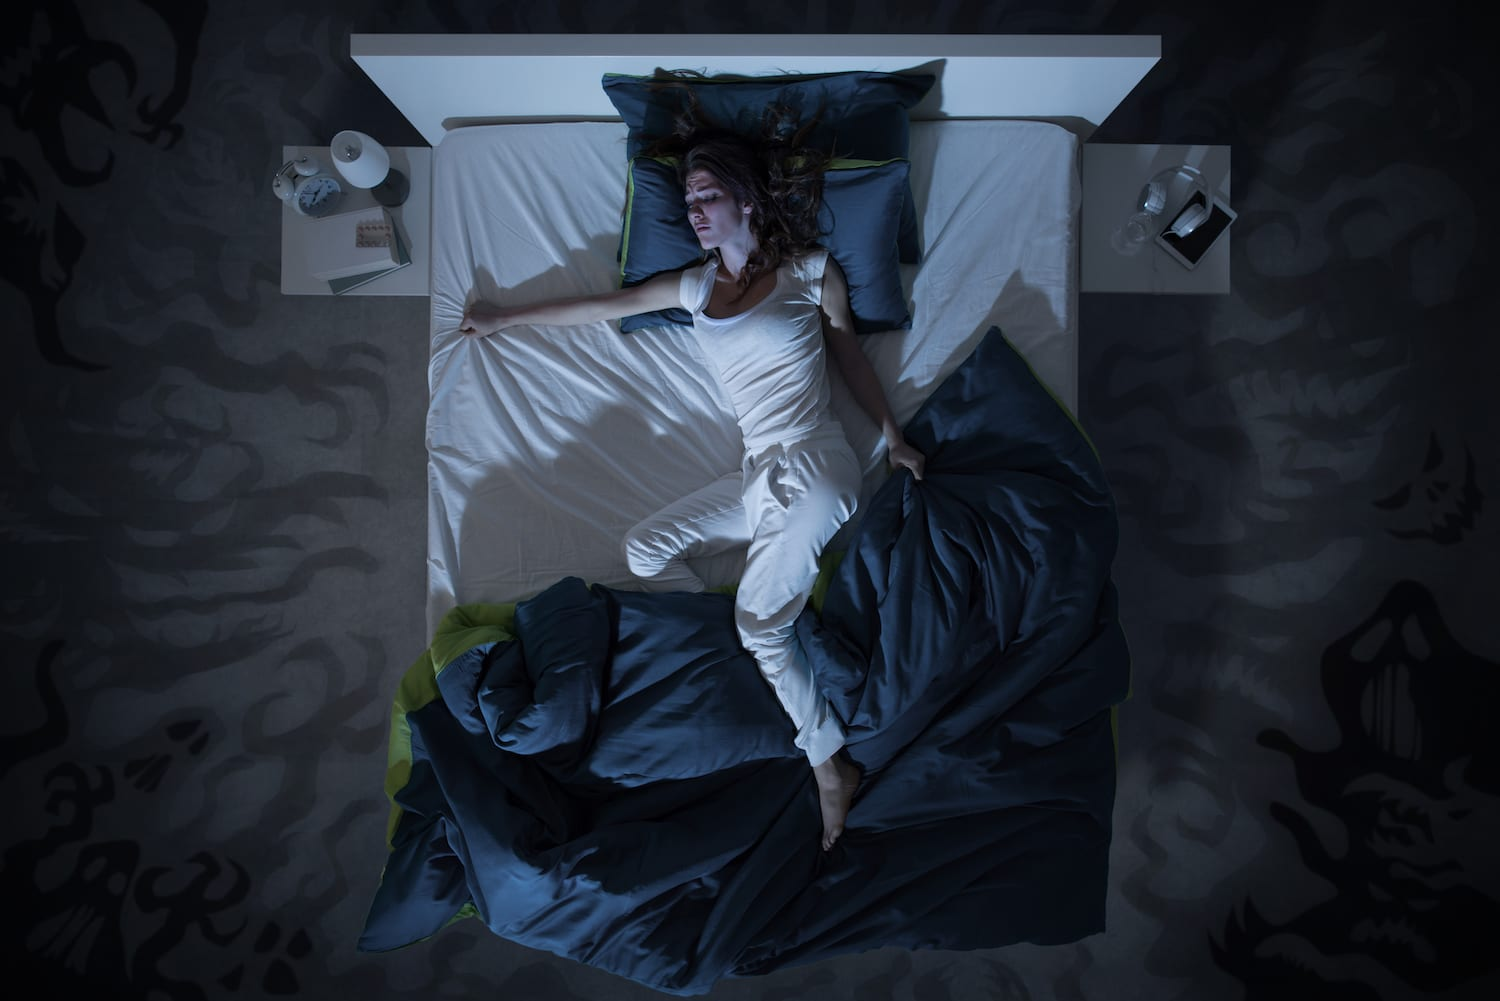 Woman tossing and turning in bed with a fever